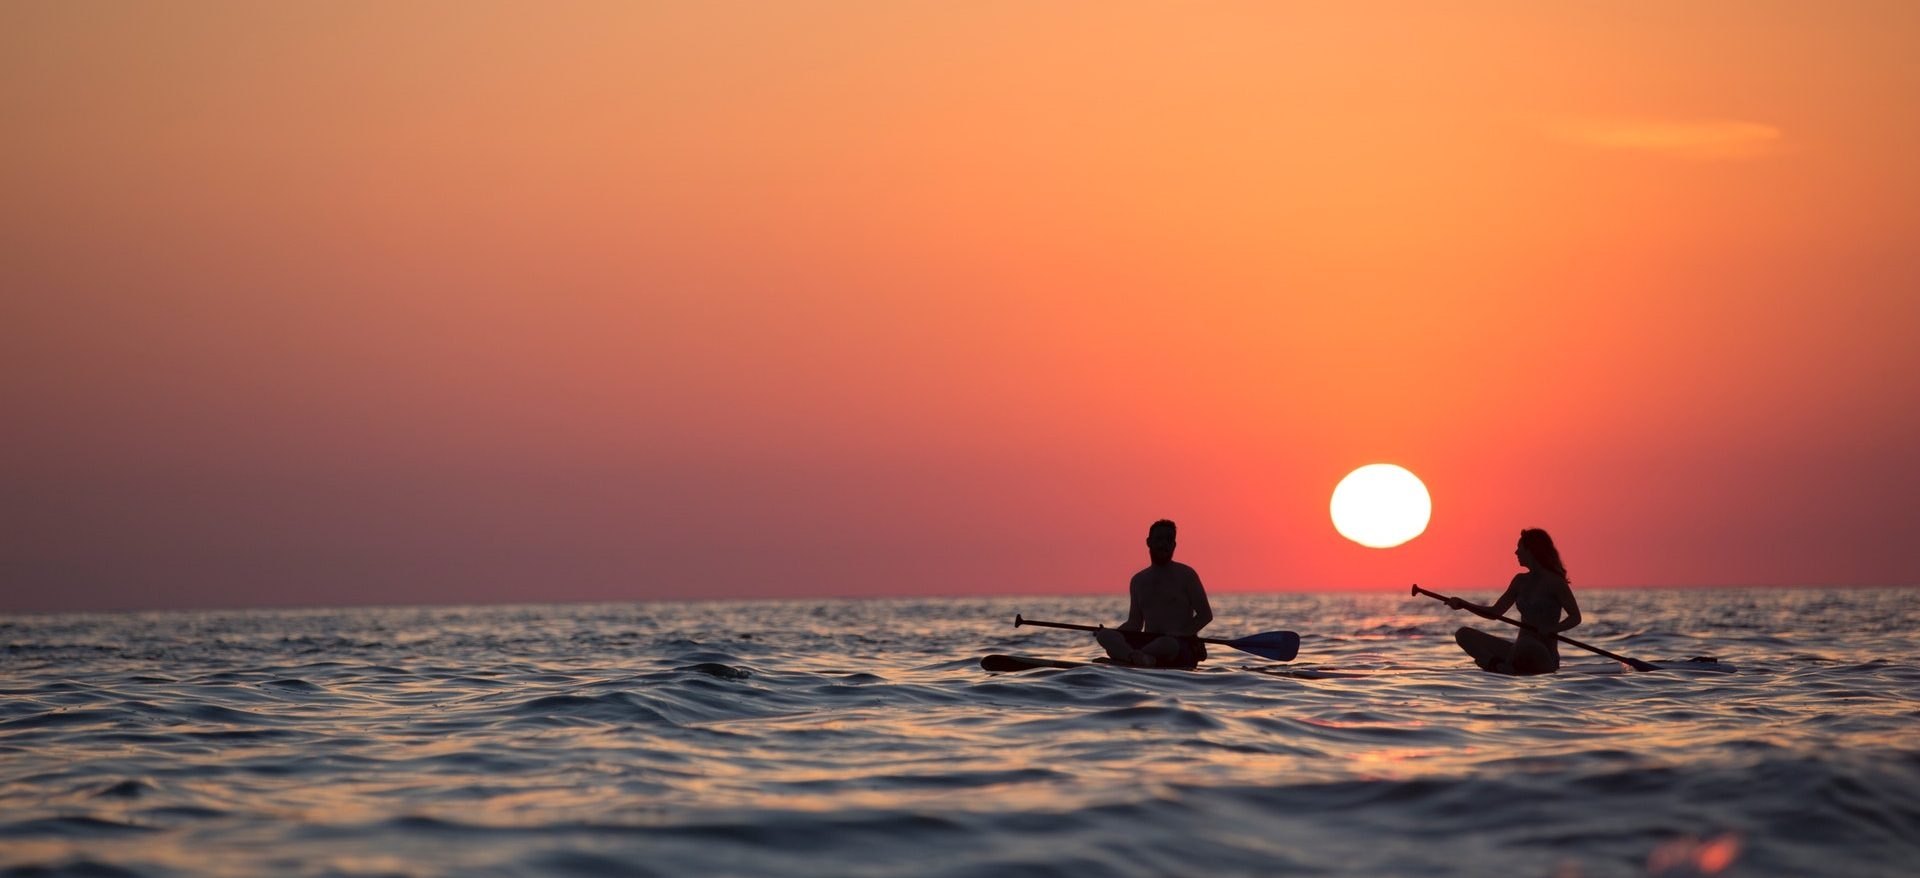 People kayaking in a sunset